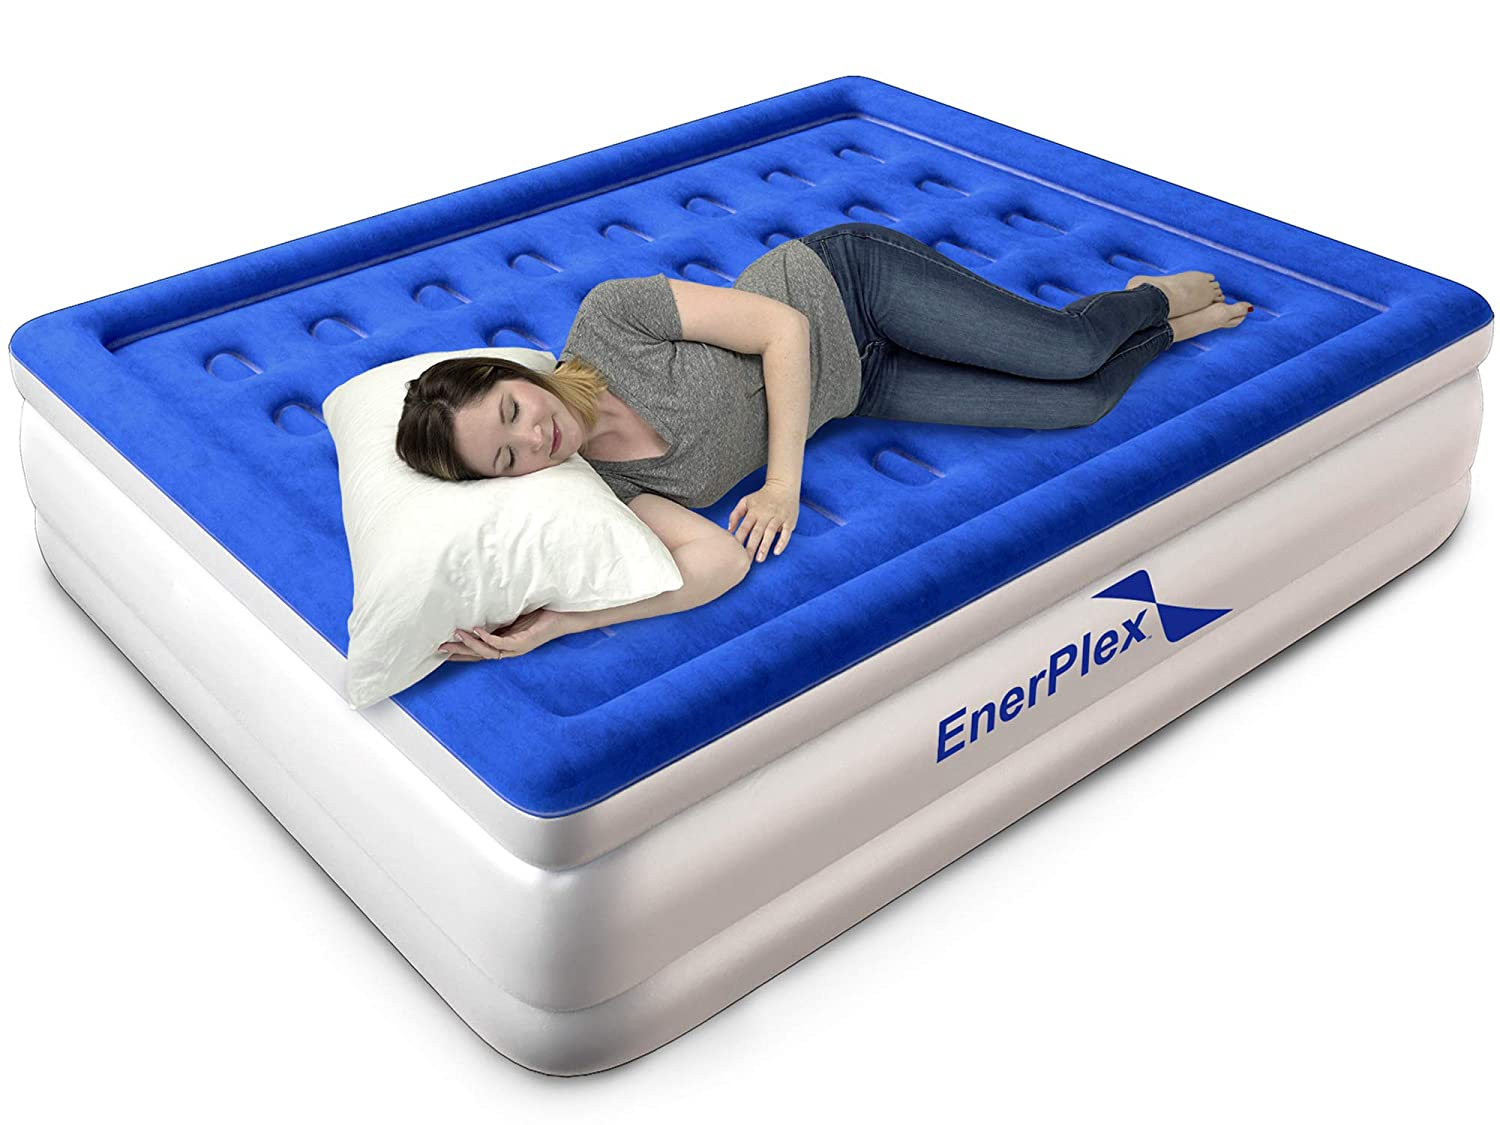 EnerPlex Upgraded Queen Air Mattress with Built-in Pump, Never-Leak Elevated Double High Queen Airbed for Guests, Blow Up Beds for Adults, Luxury Flocked Top, Inflatable Mattress, 2-Year Warranty